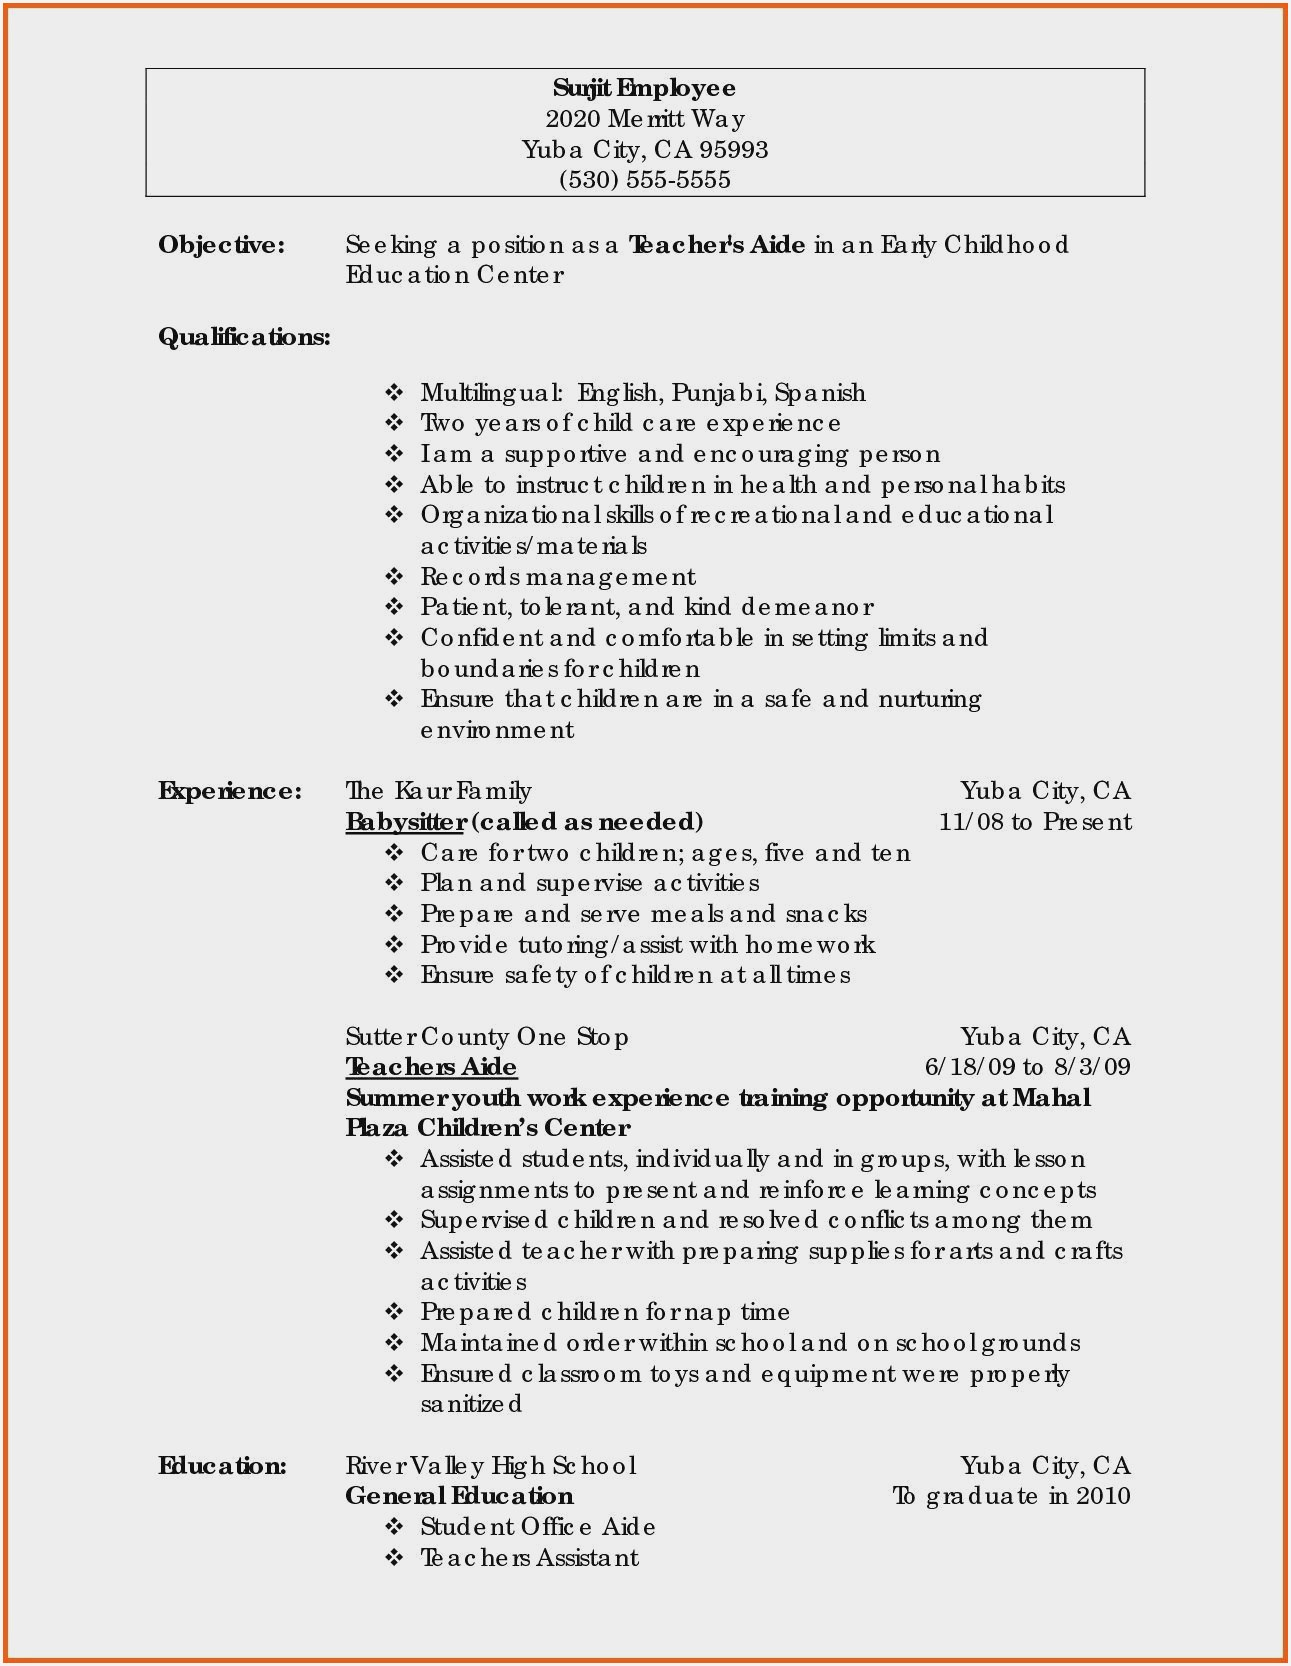 best education resume format sample letter for applying job tongue and quill template Resume Resume Education Format